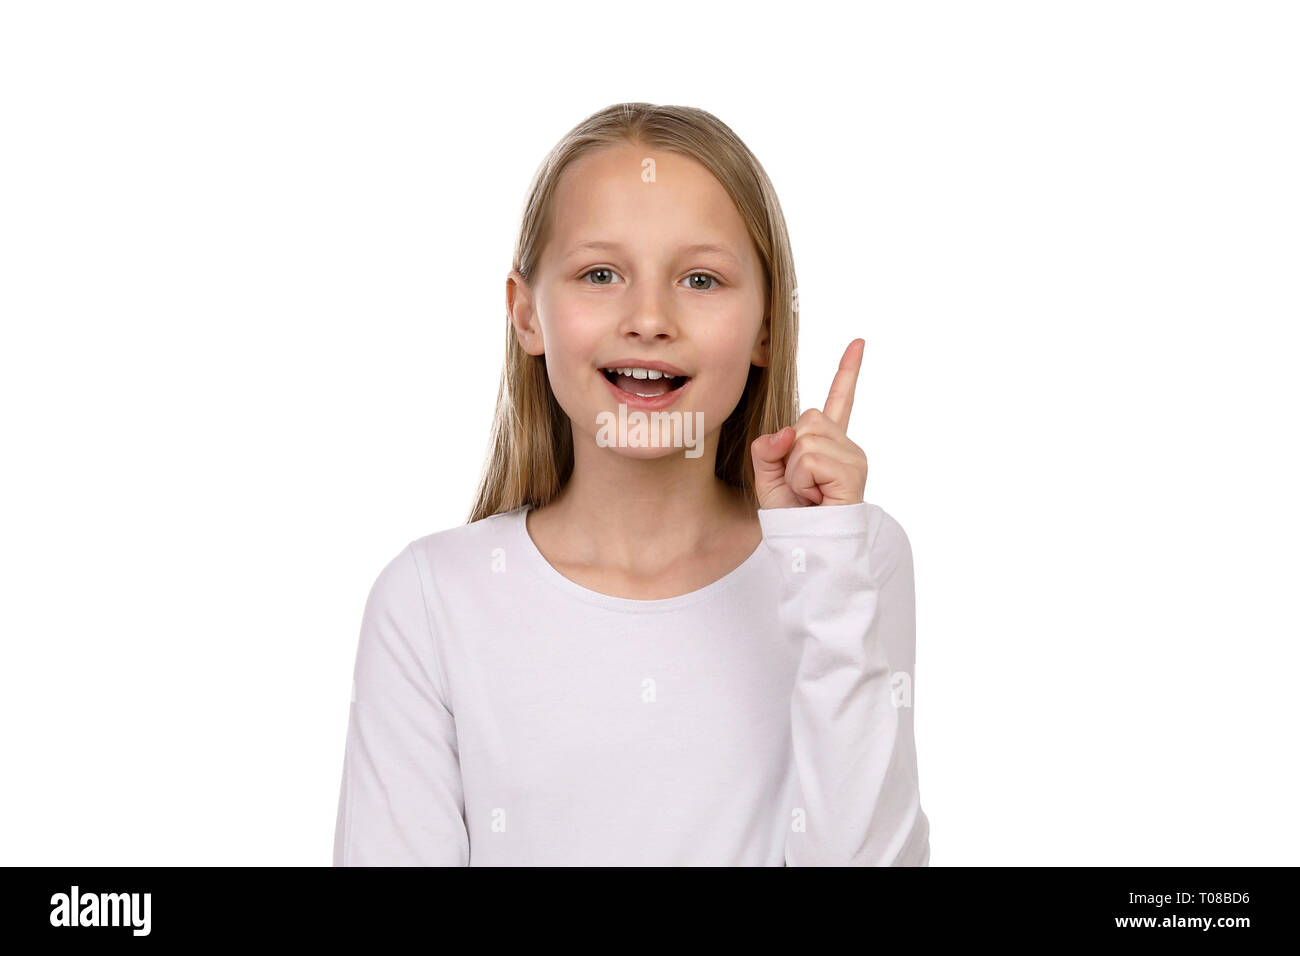 Pretty blond girl wants to say something - Stock Image